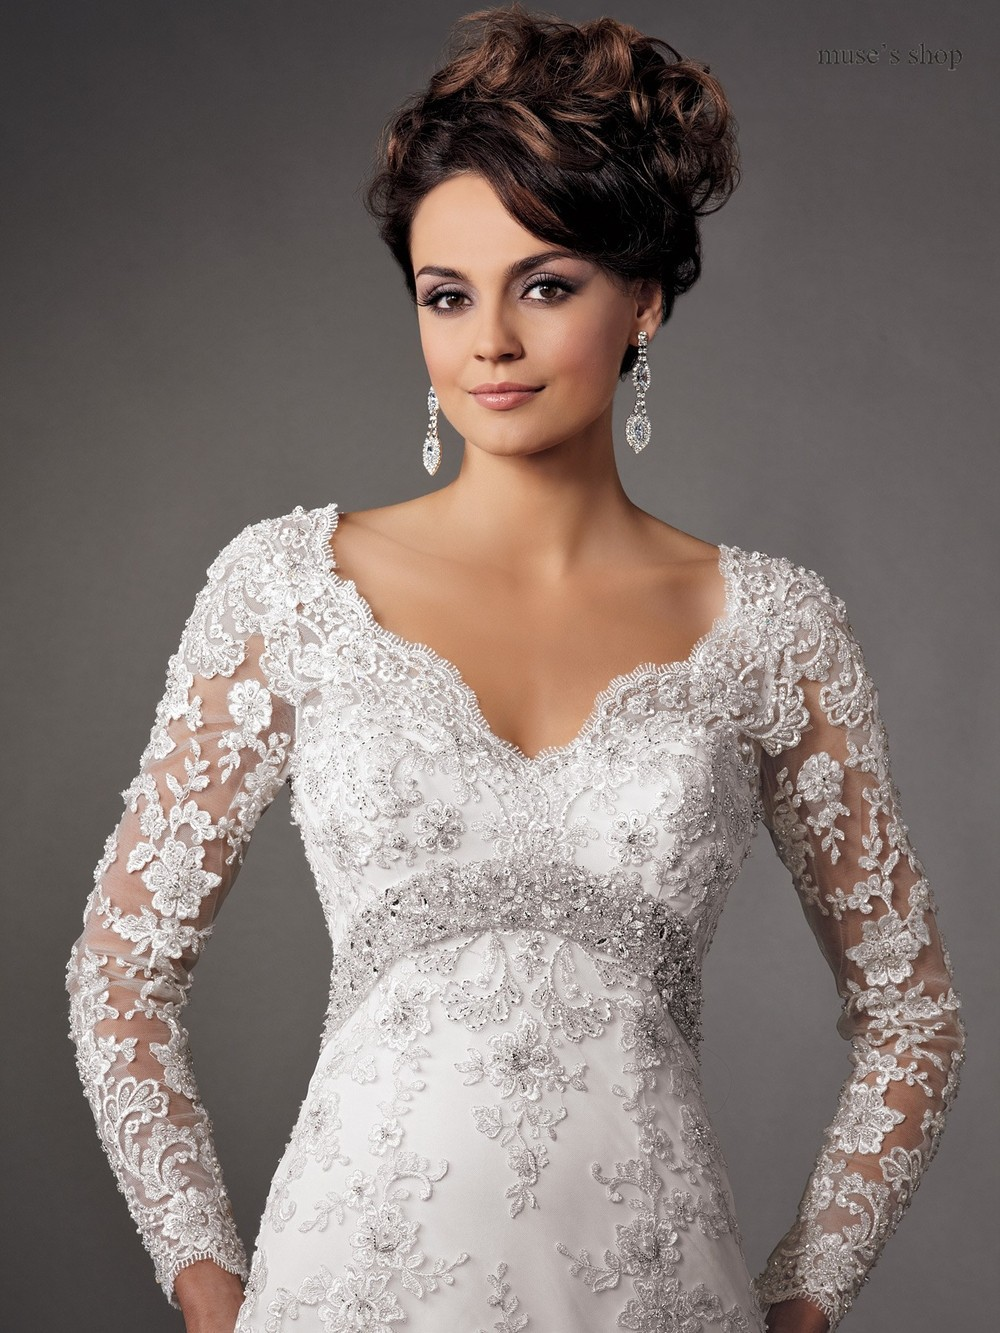 wedding dress for petite petite dresses for wedding wedding gowns for petite brides dillards petite dresses petite formal dresses petite dresses